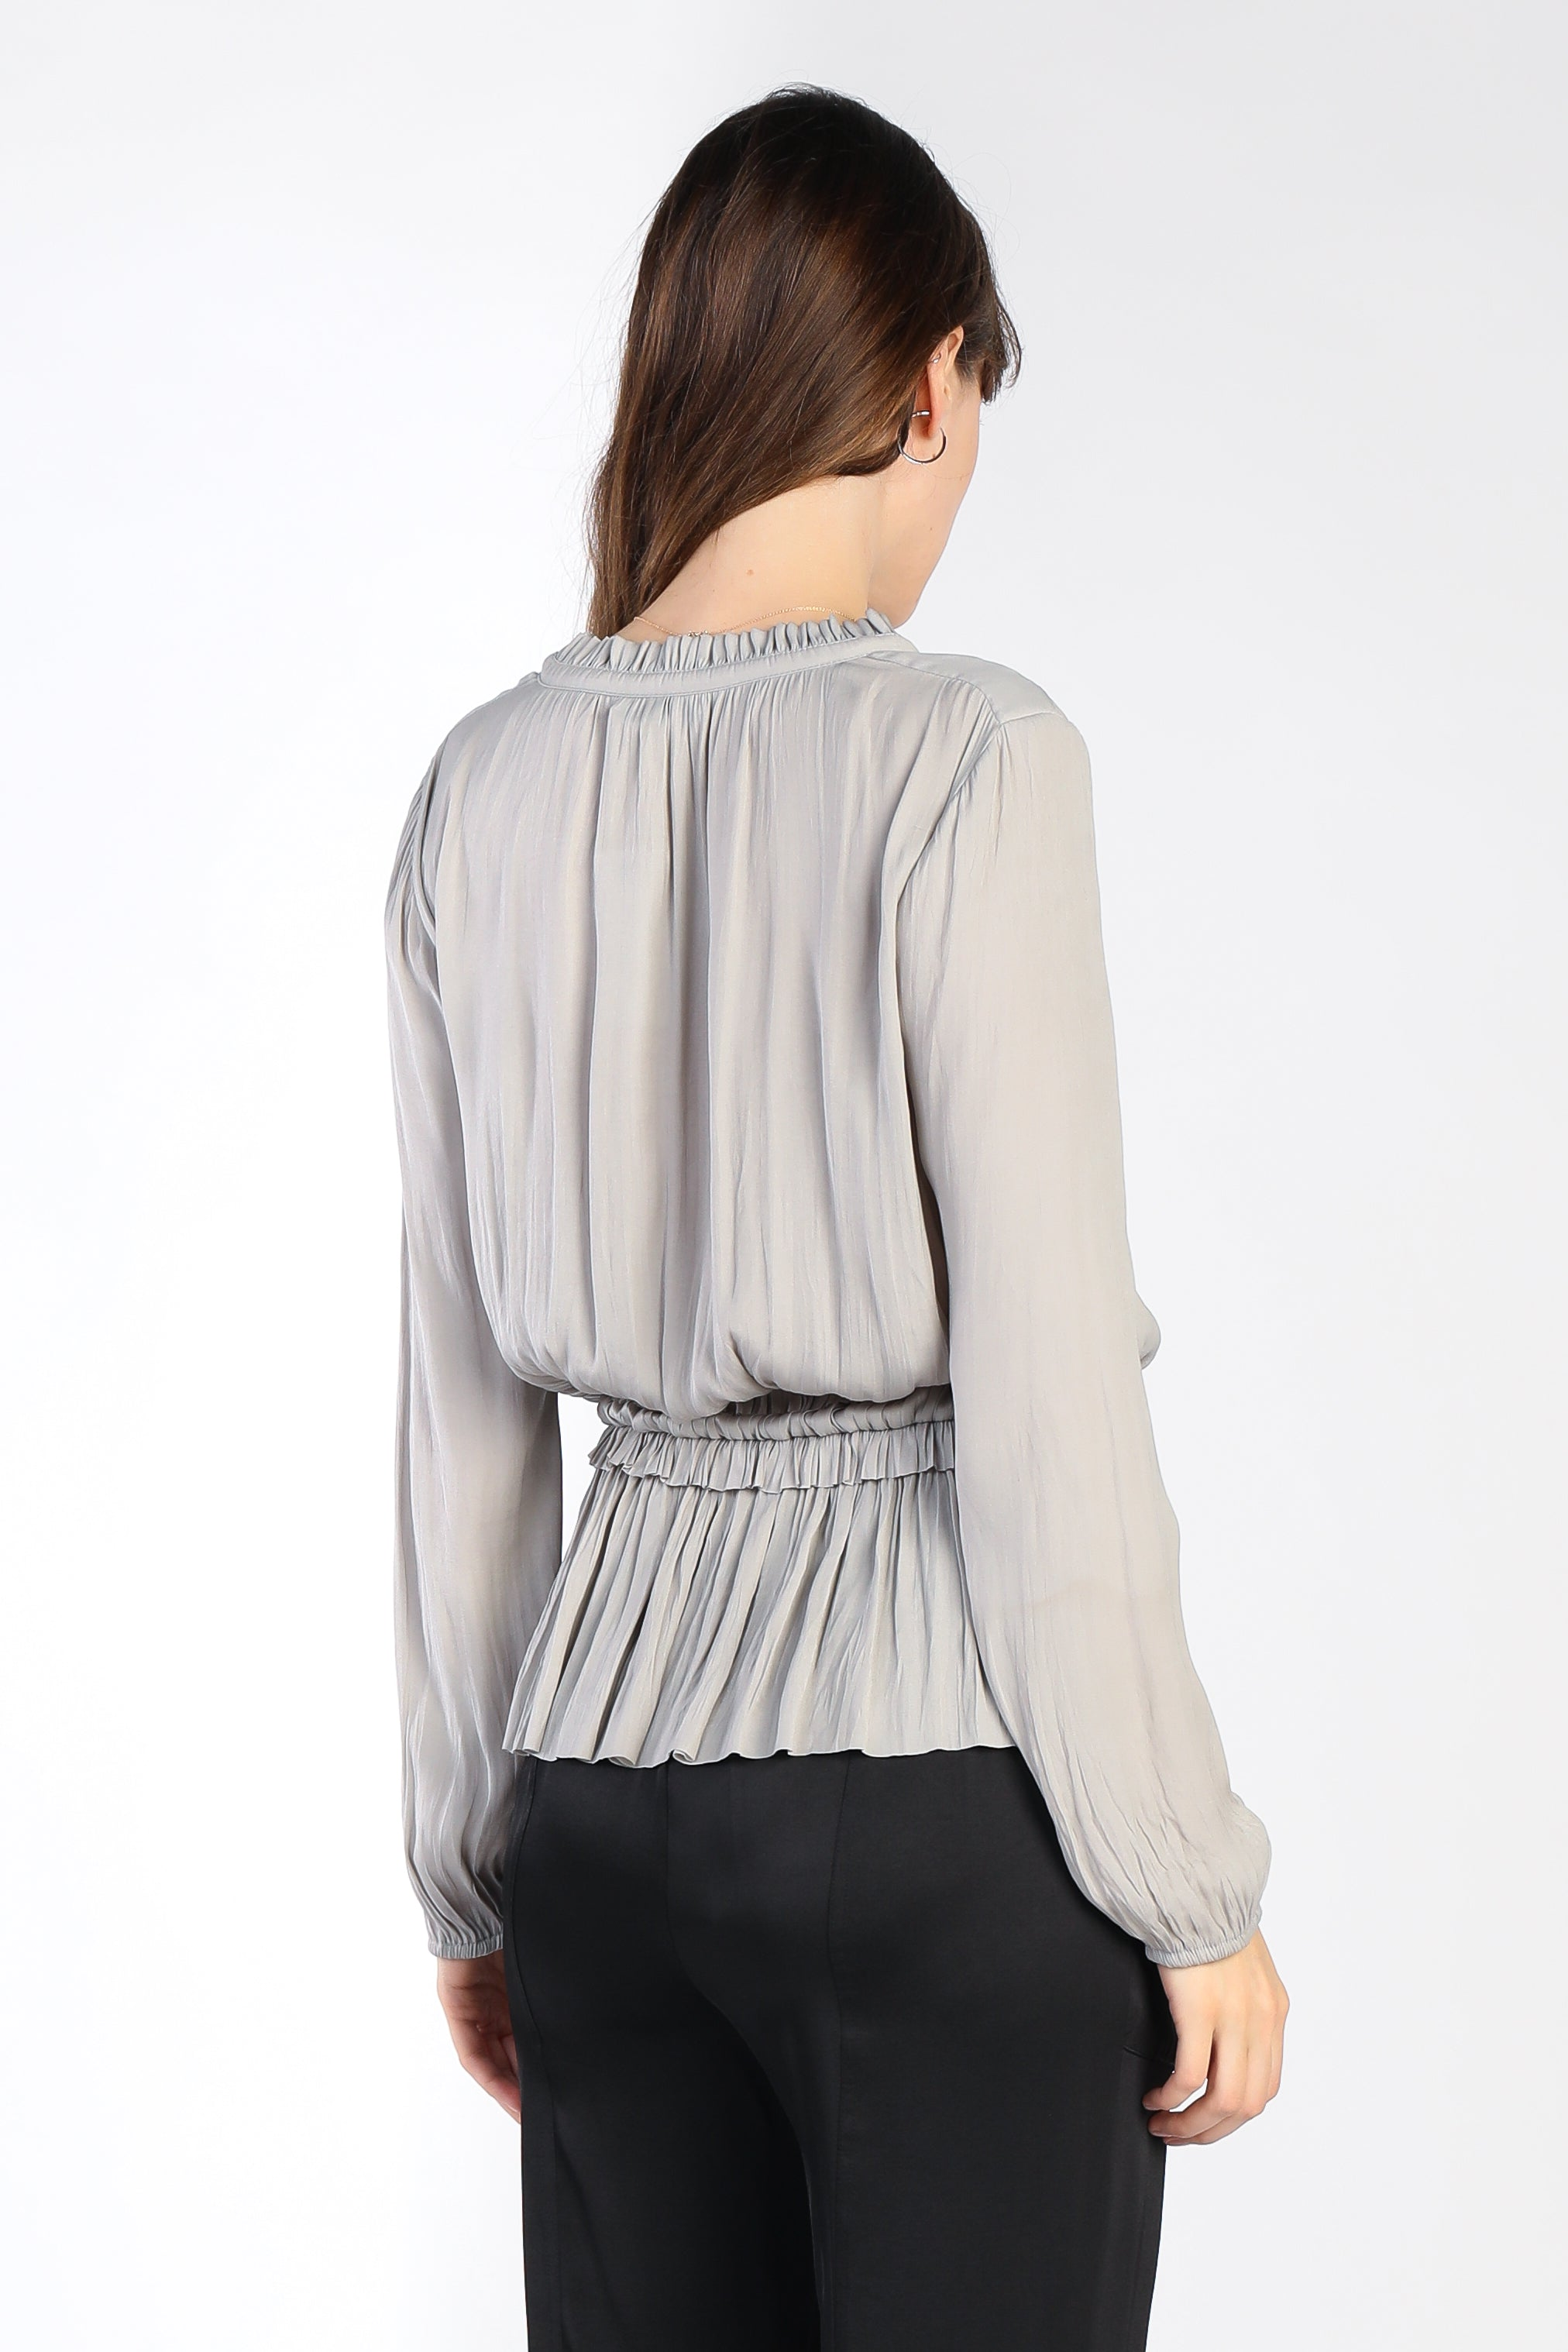 Long Sleeve V Neck Pleated Bottom Blouse - Jacqueline B Clothing